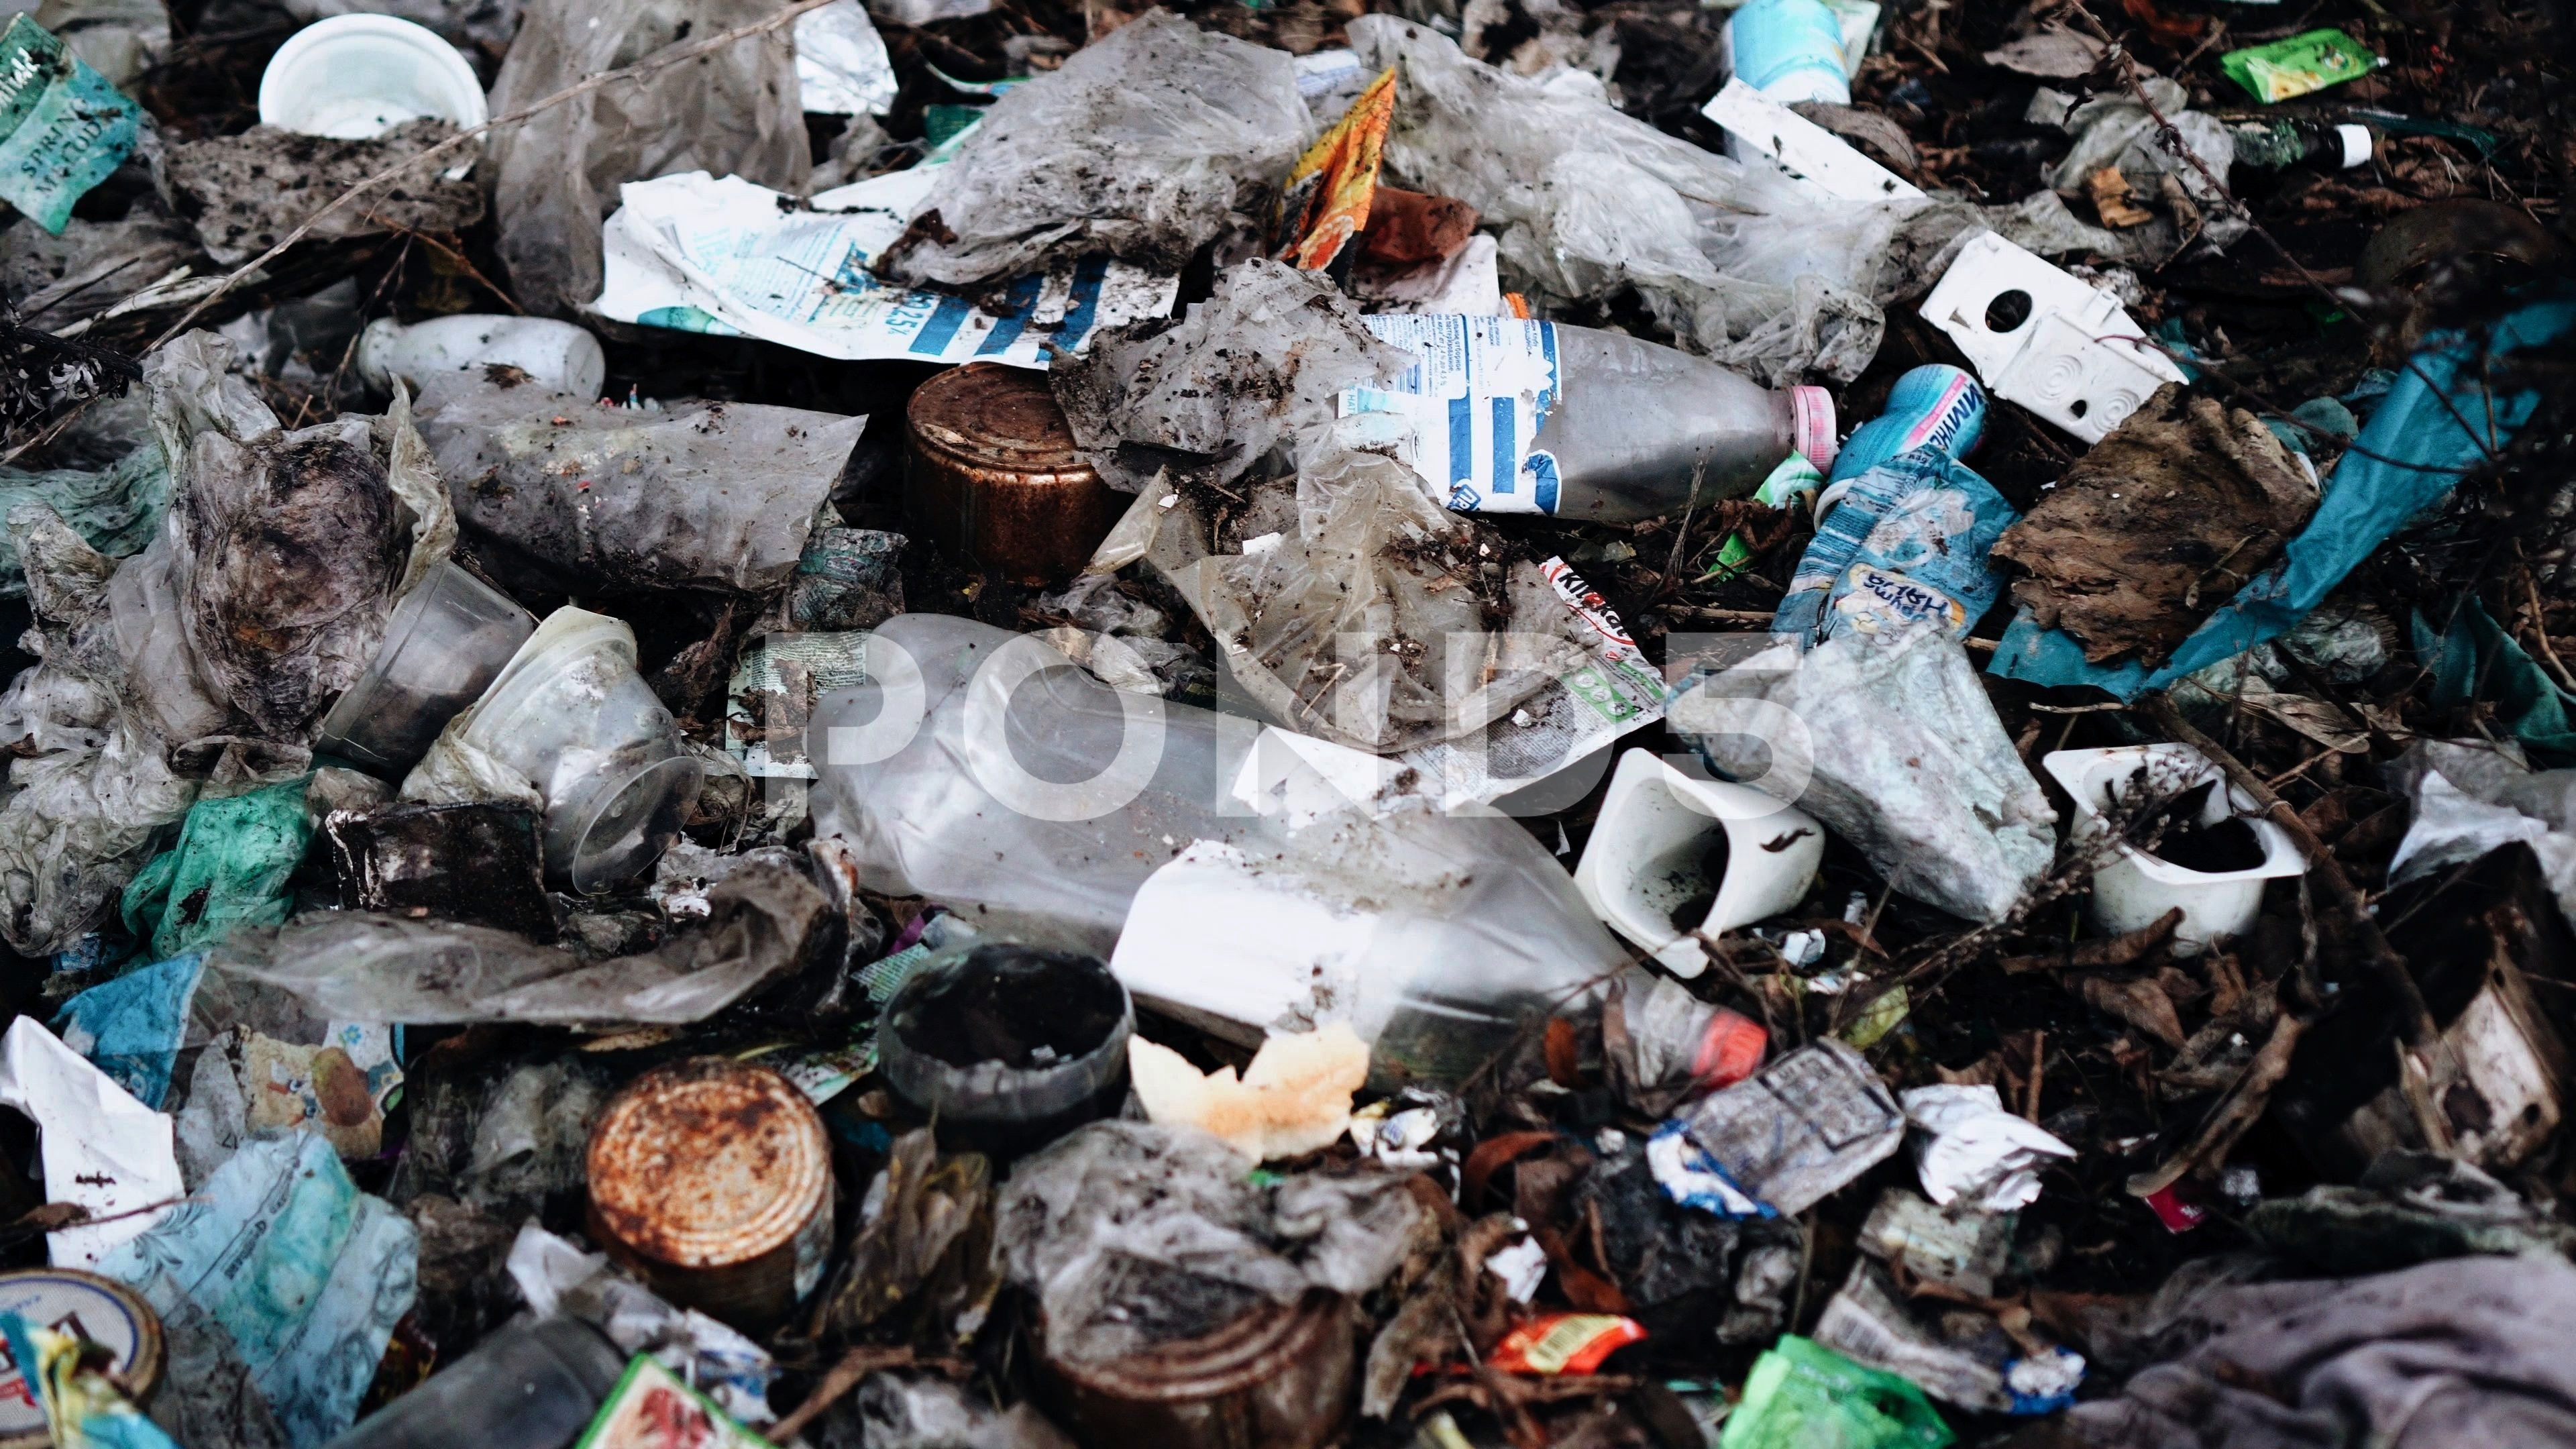 huge pile of garbage right in the city on a vacant lot Pollution of nature cityvacantgarbagehugeA huge pile of garbage right in the city on a vacant lot Pollution of natu...